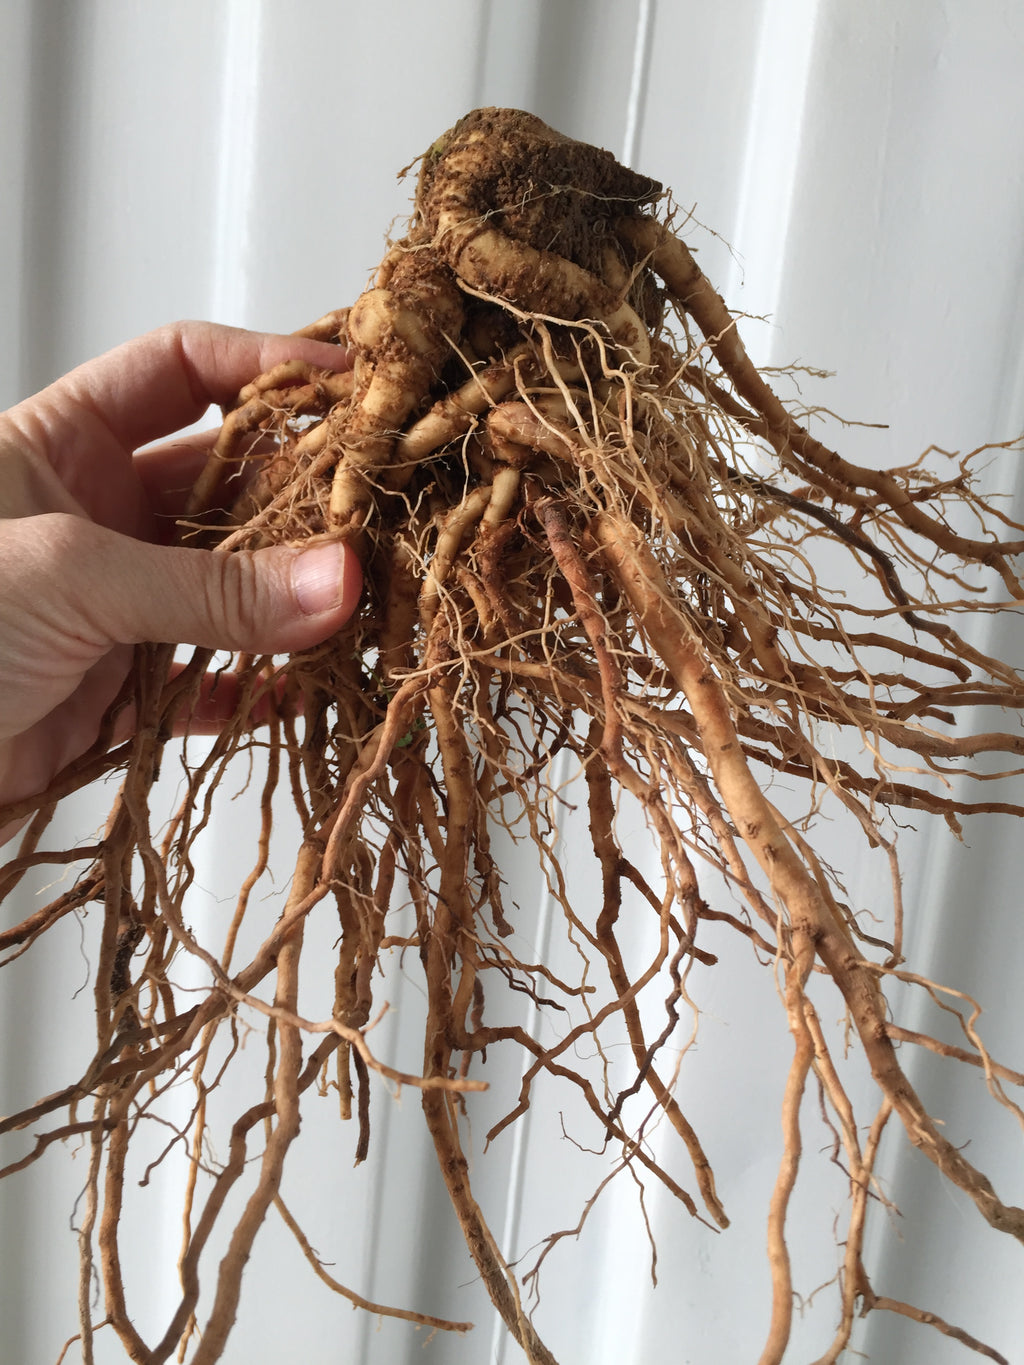 Medicine Maker Winter Share: Using Roots and Barks